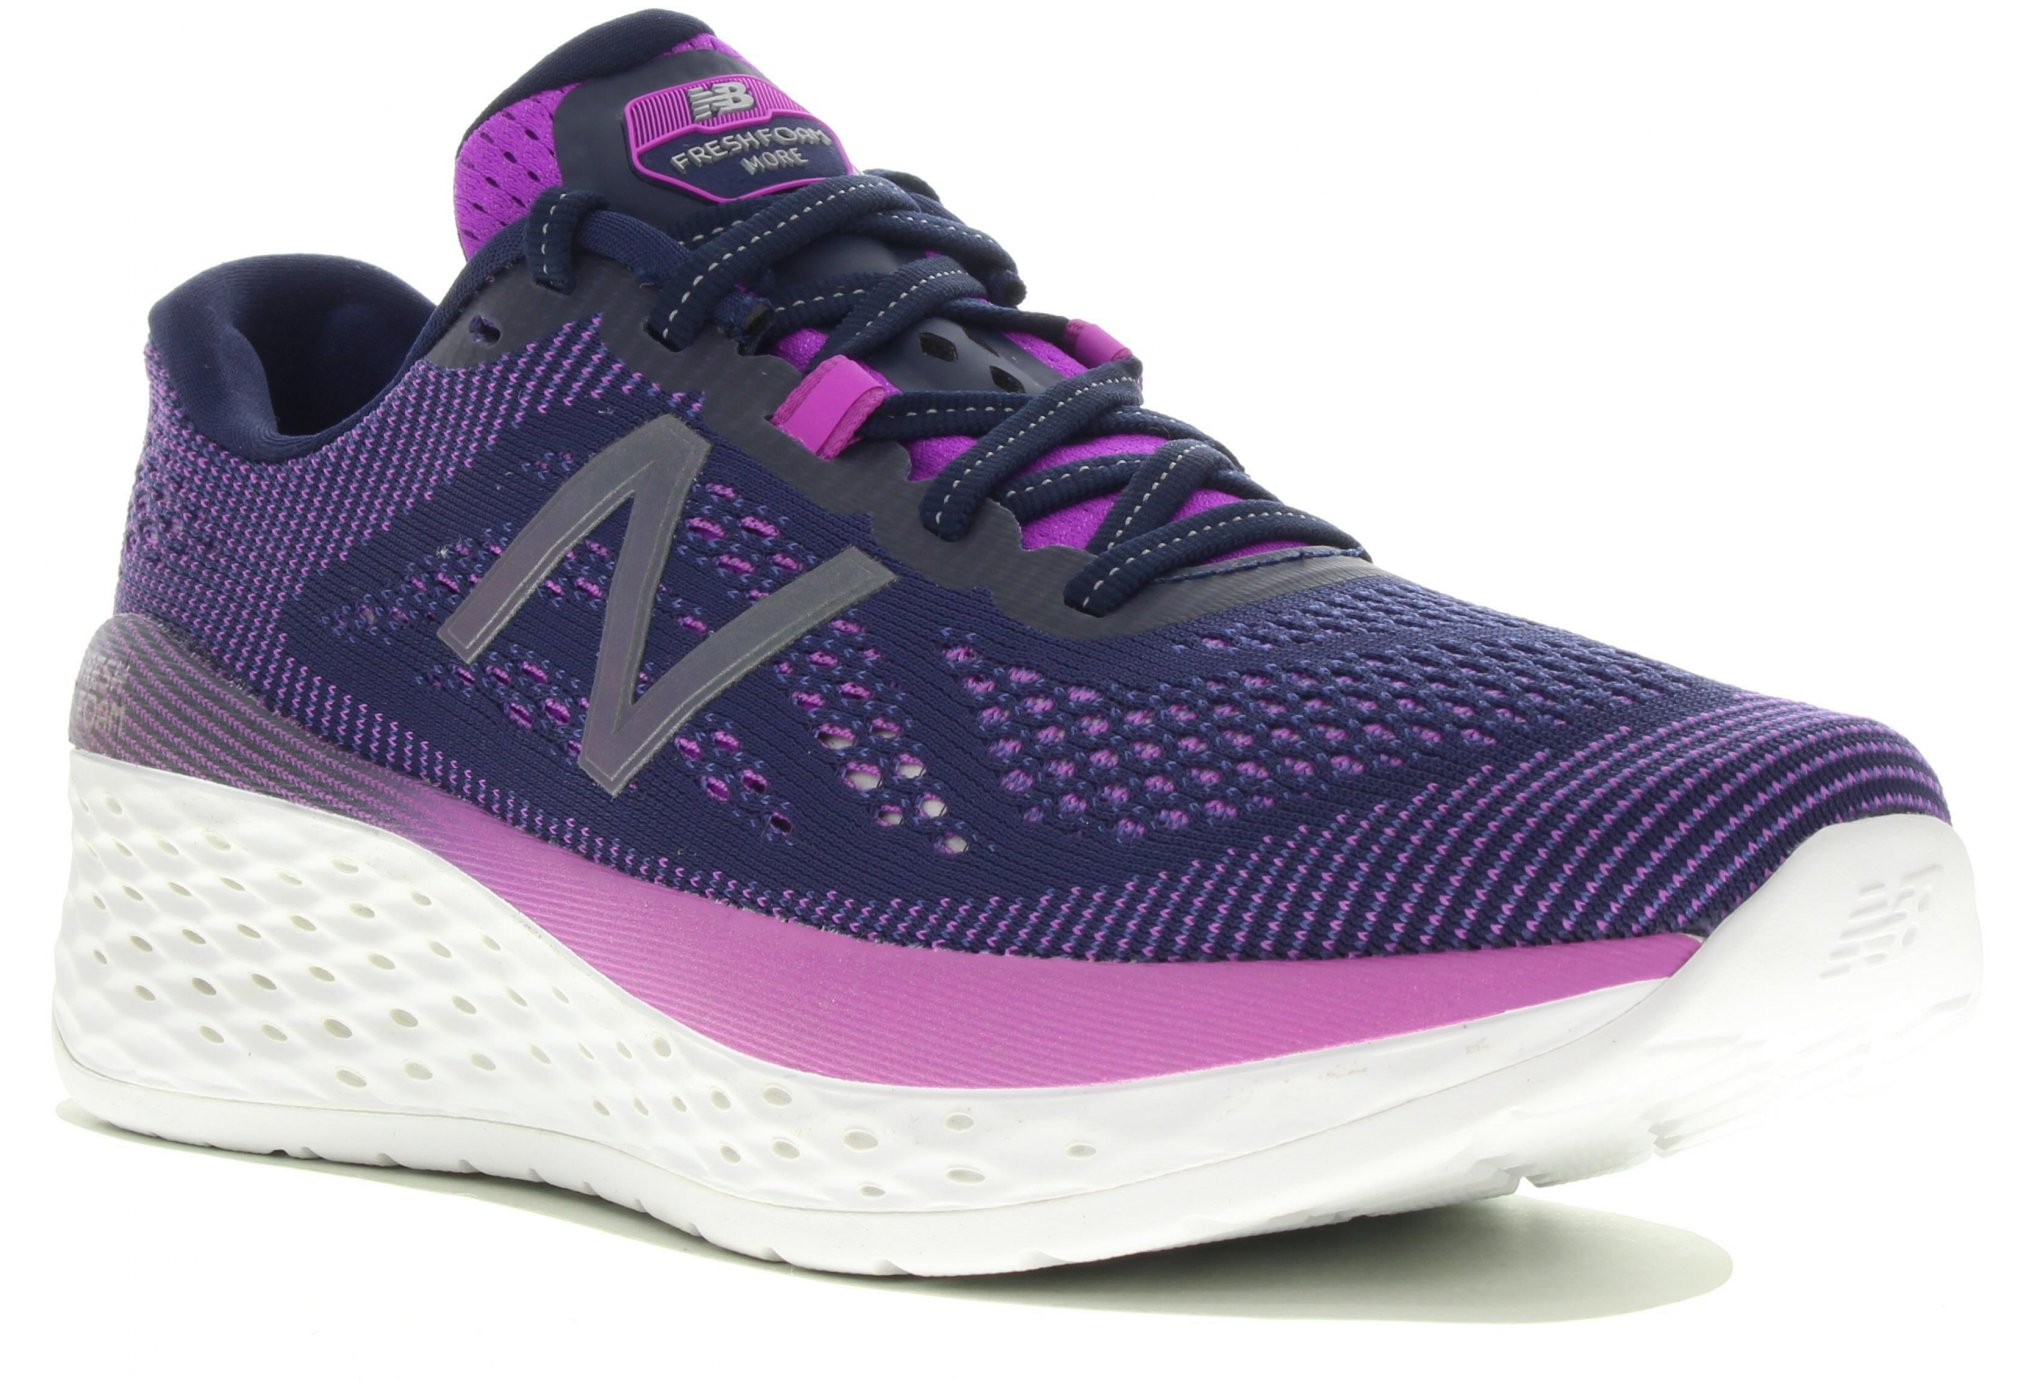 New Balance Fresh Foam More Chaussures running femme